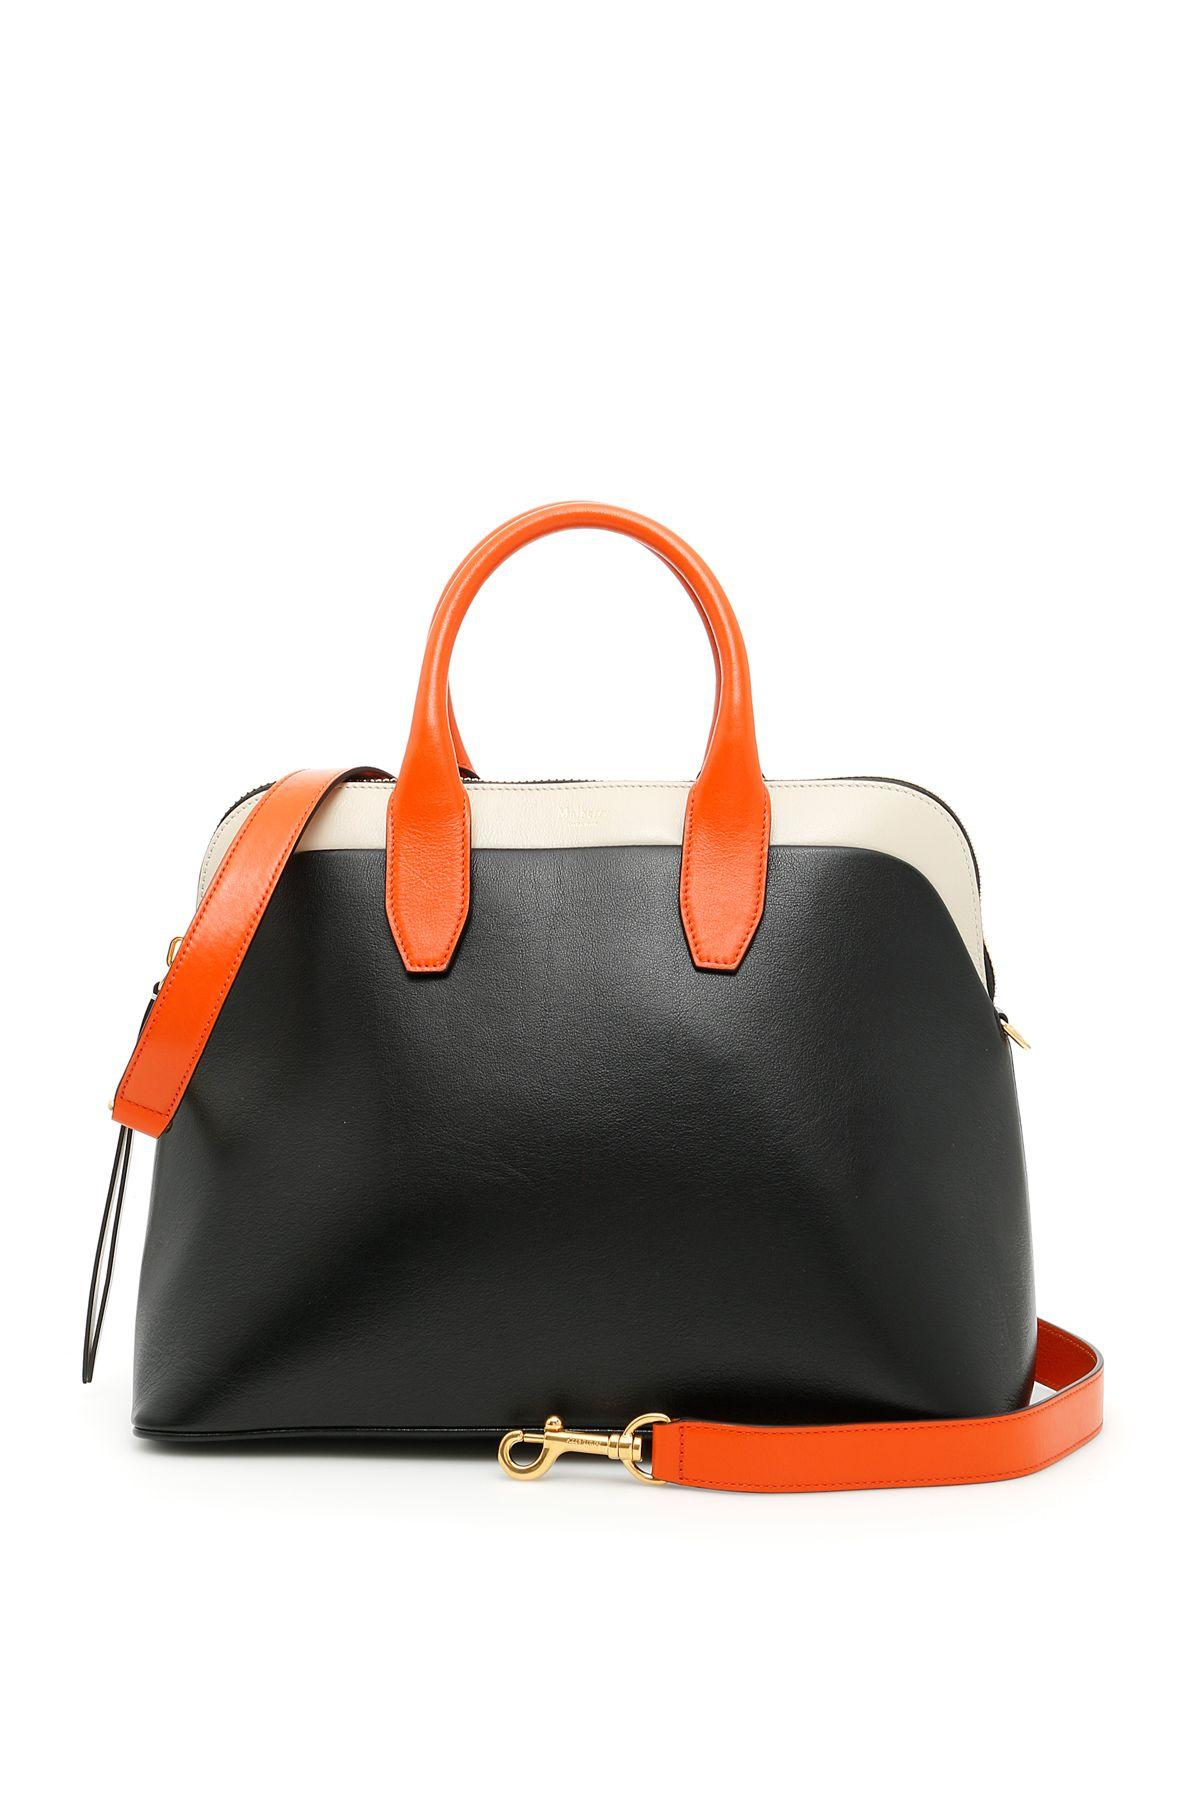 Mulberry Colville Bag In Black Brorange Chalkarancio